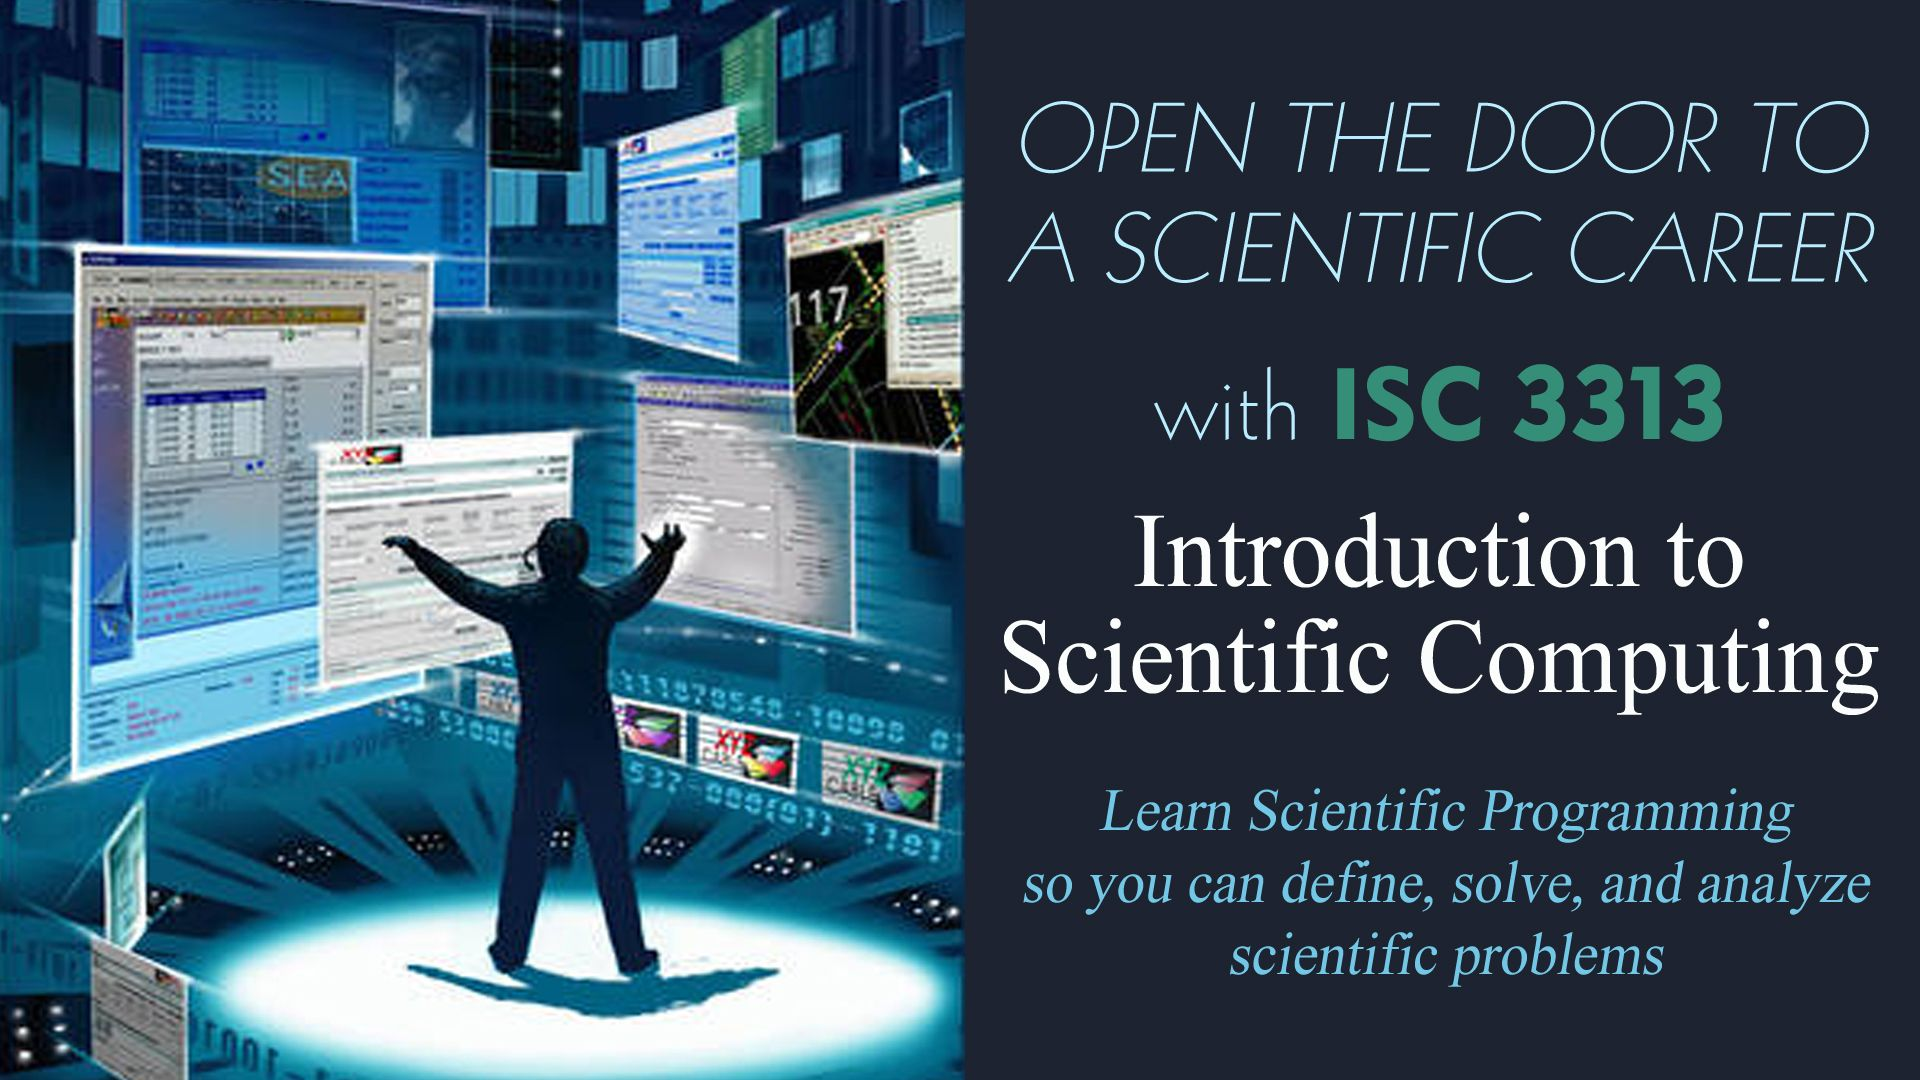 ISC 3313 - Introduction to Scientific Computing